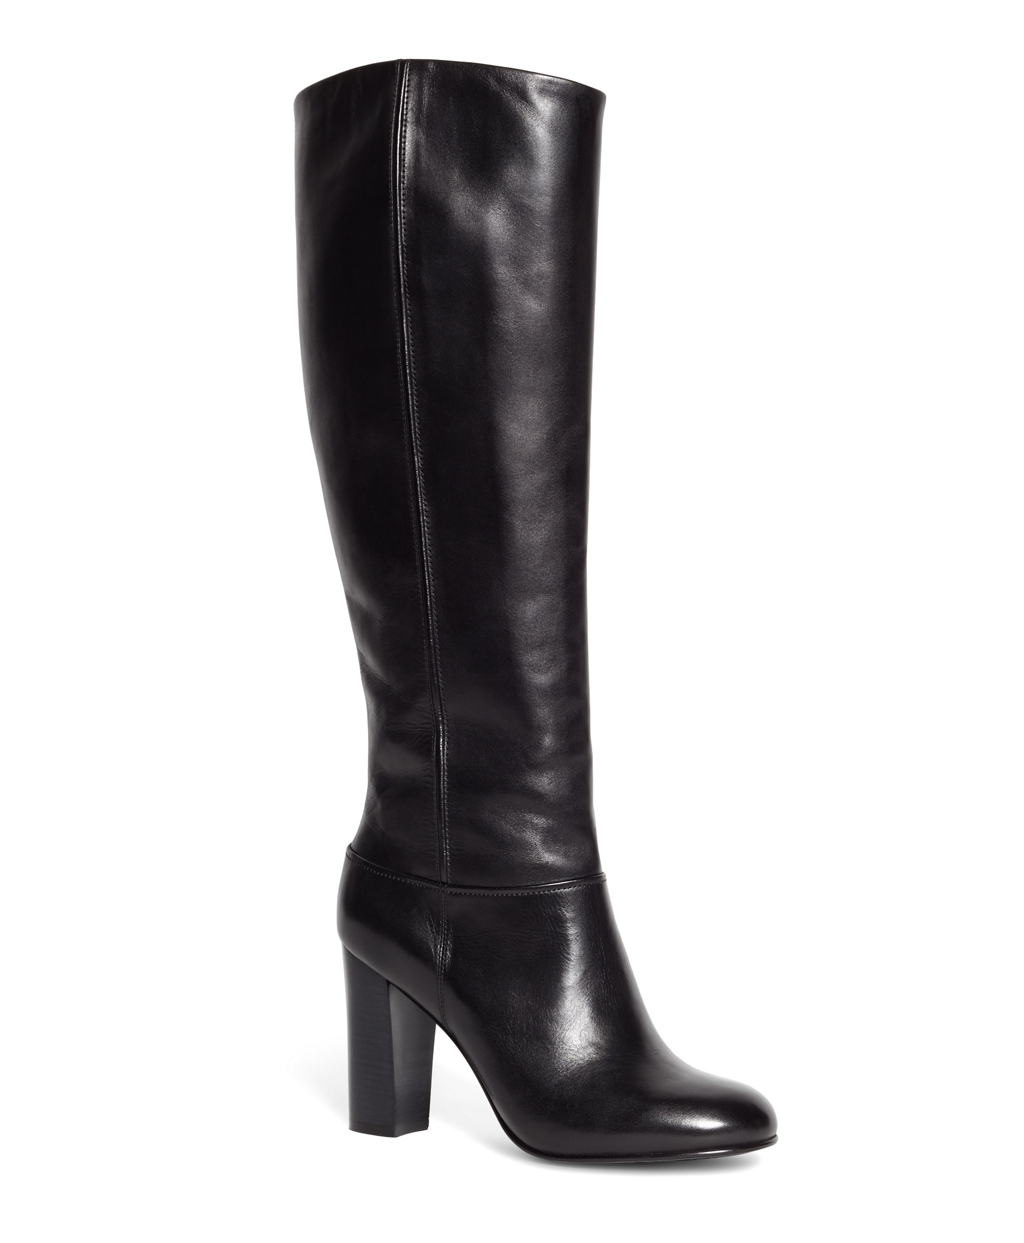 Brooks brothers Tall Leather Stacked Heel Boots in Black ...